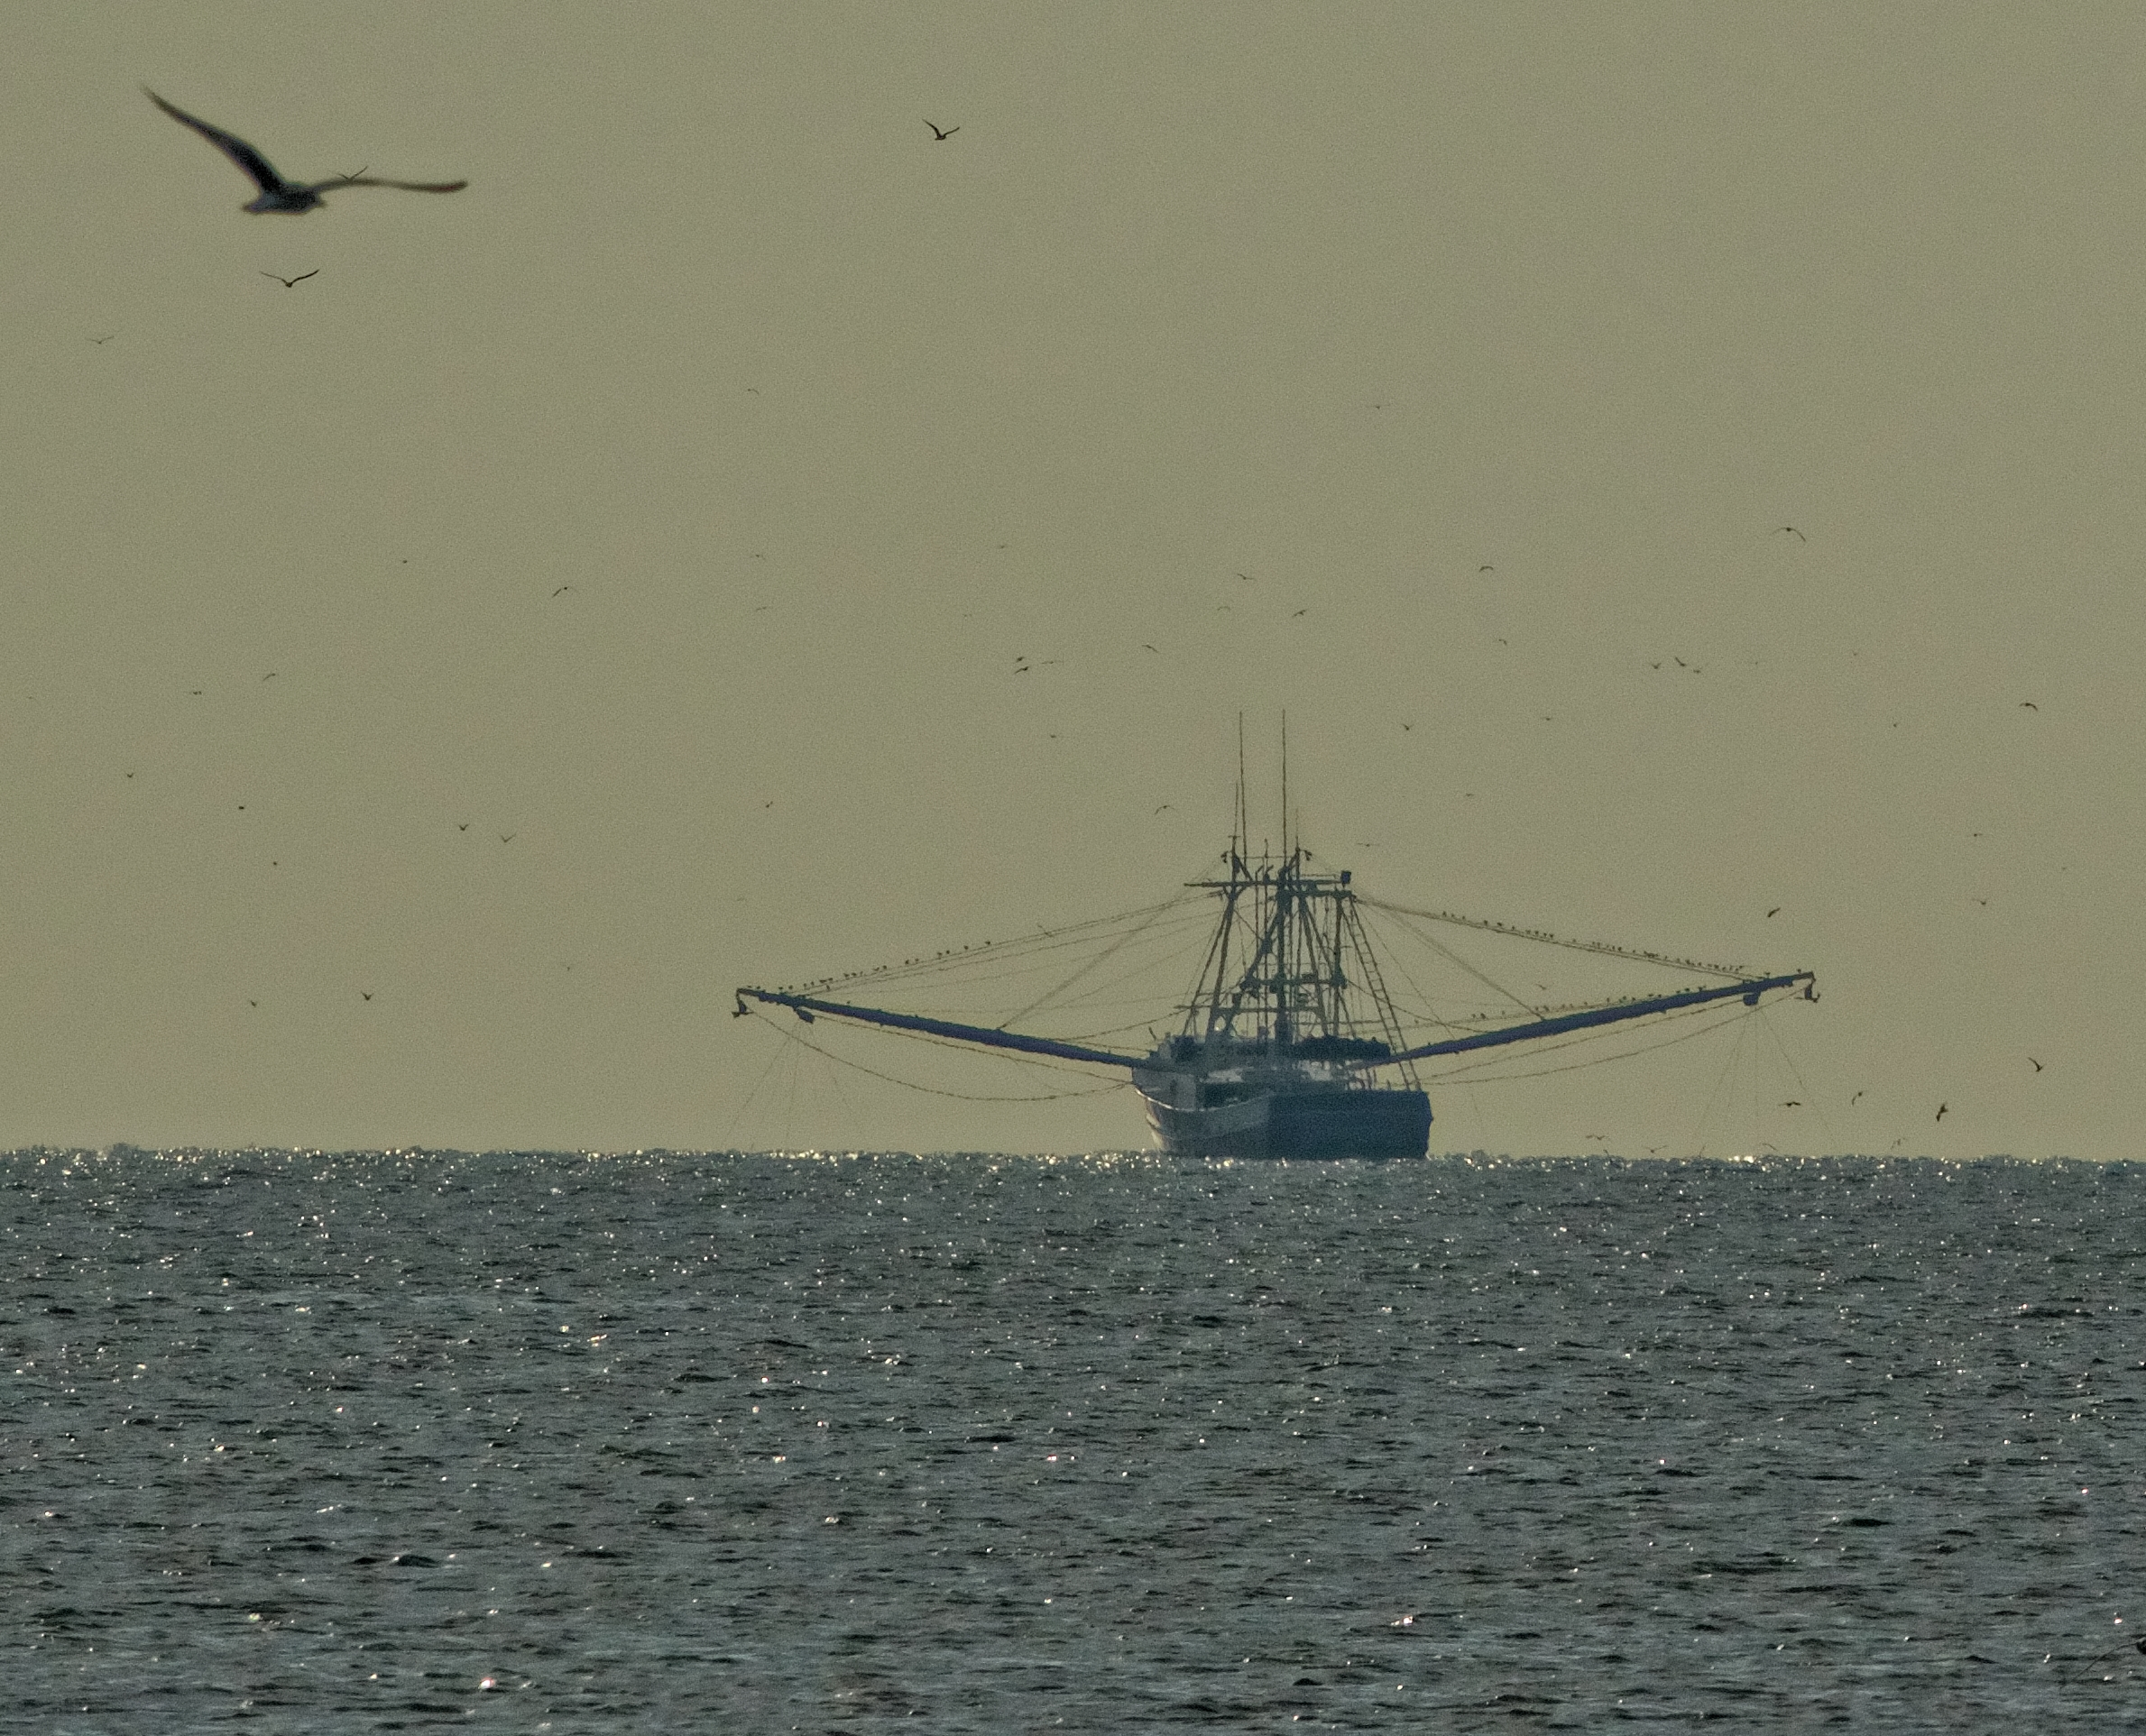 It is now officially summer and it sure feels like it...Mayport Shrimper on a lazy hazy summer day.